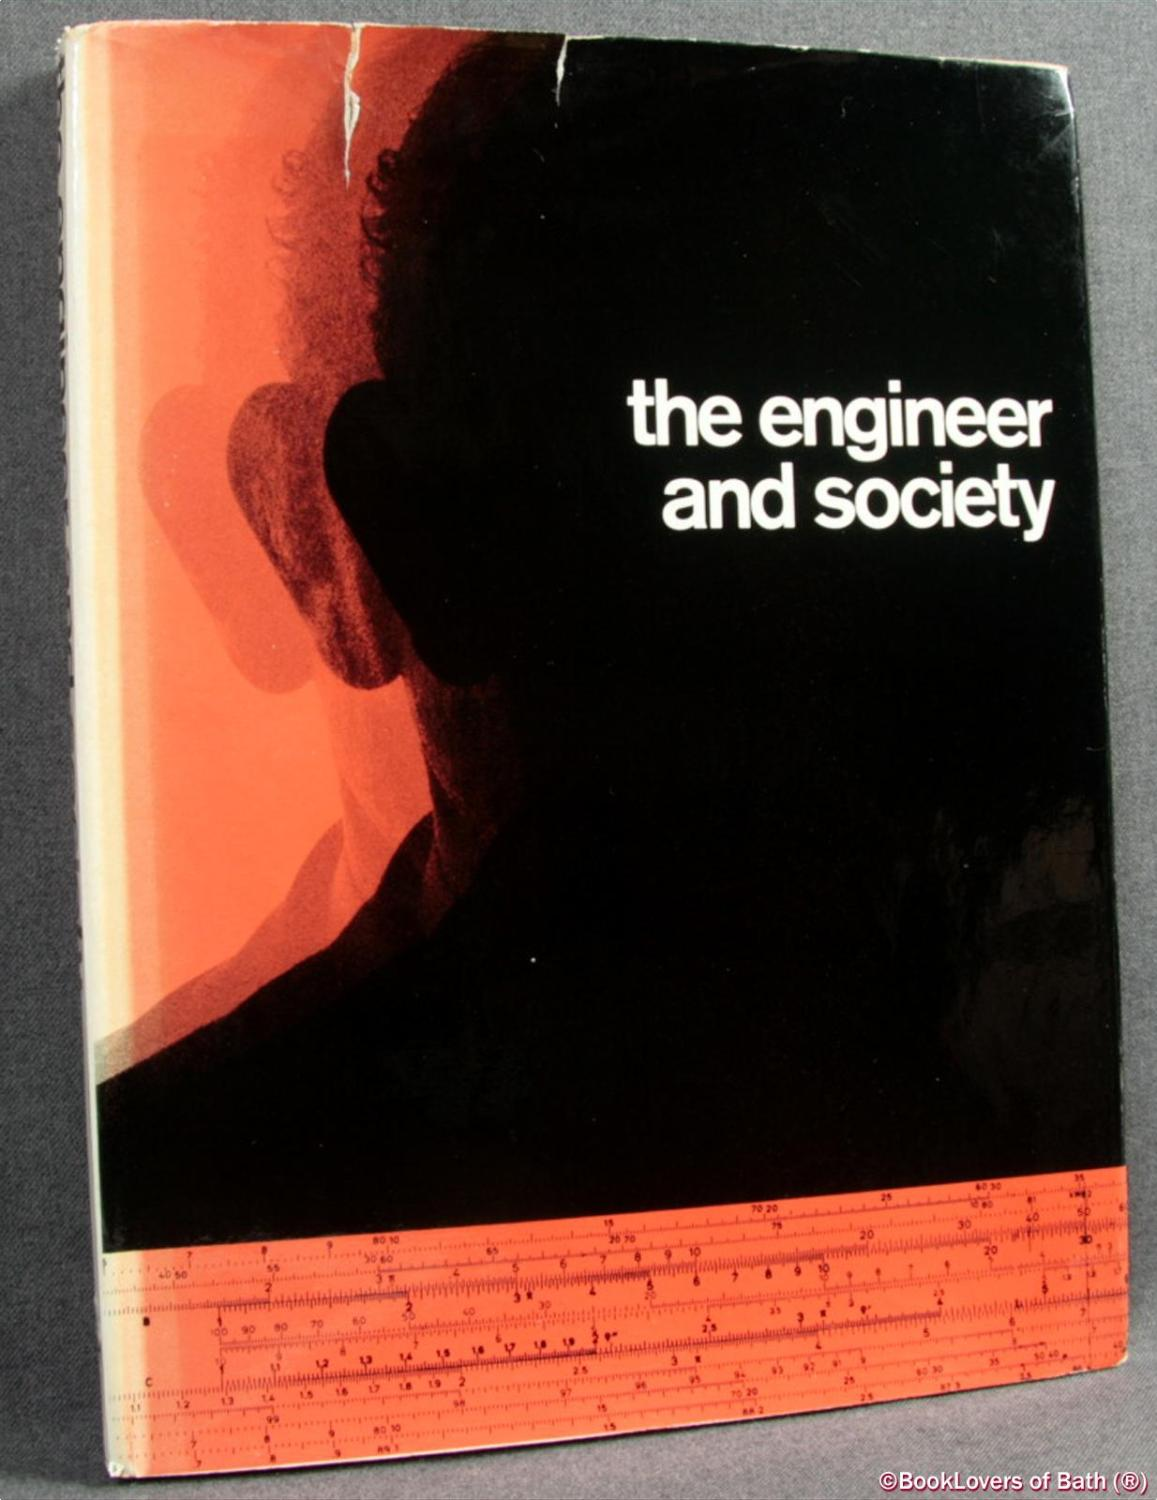 The Engineer and Society: Edited by E. G. Semler